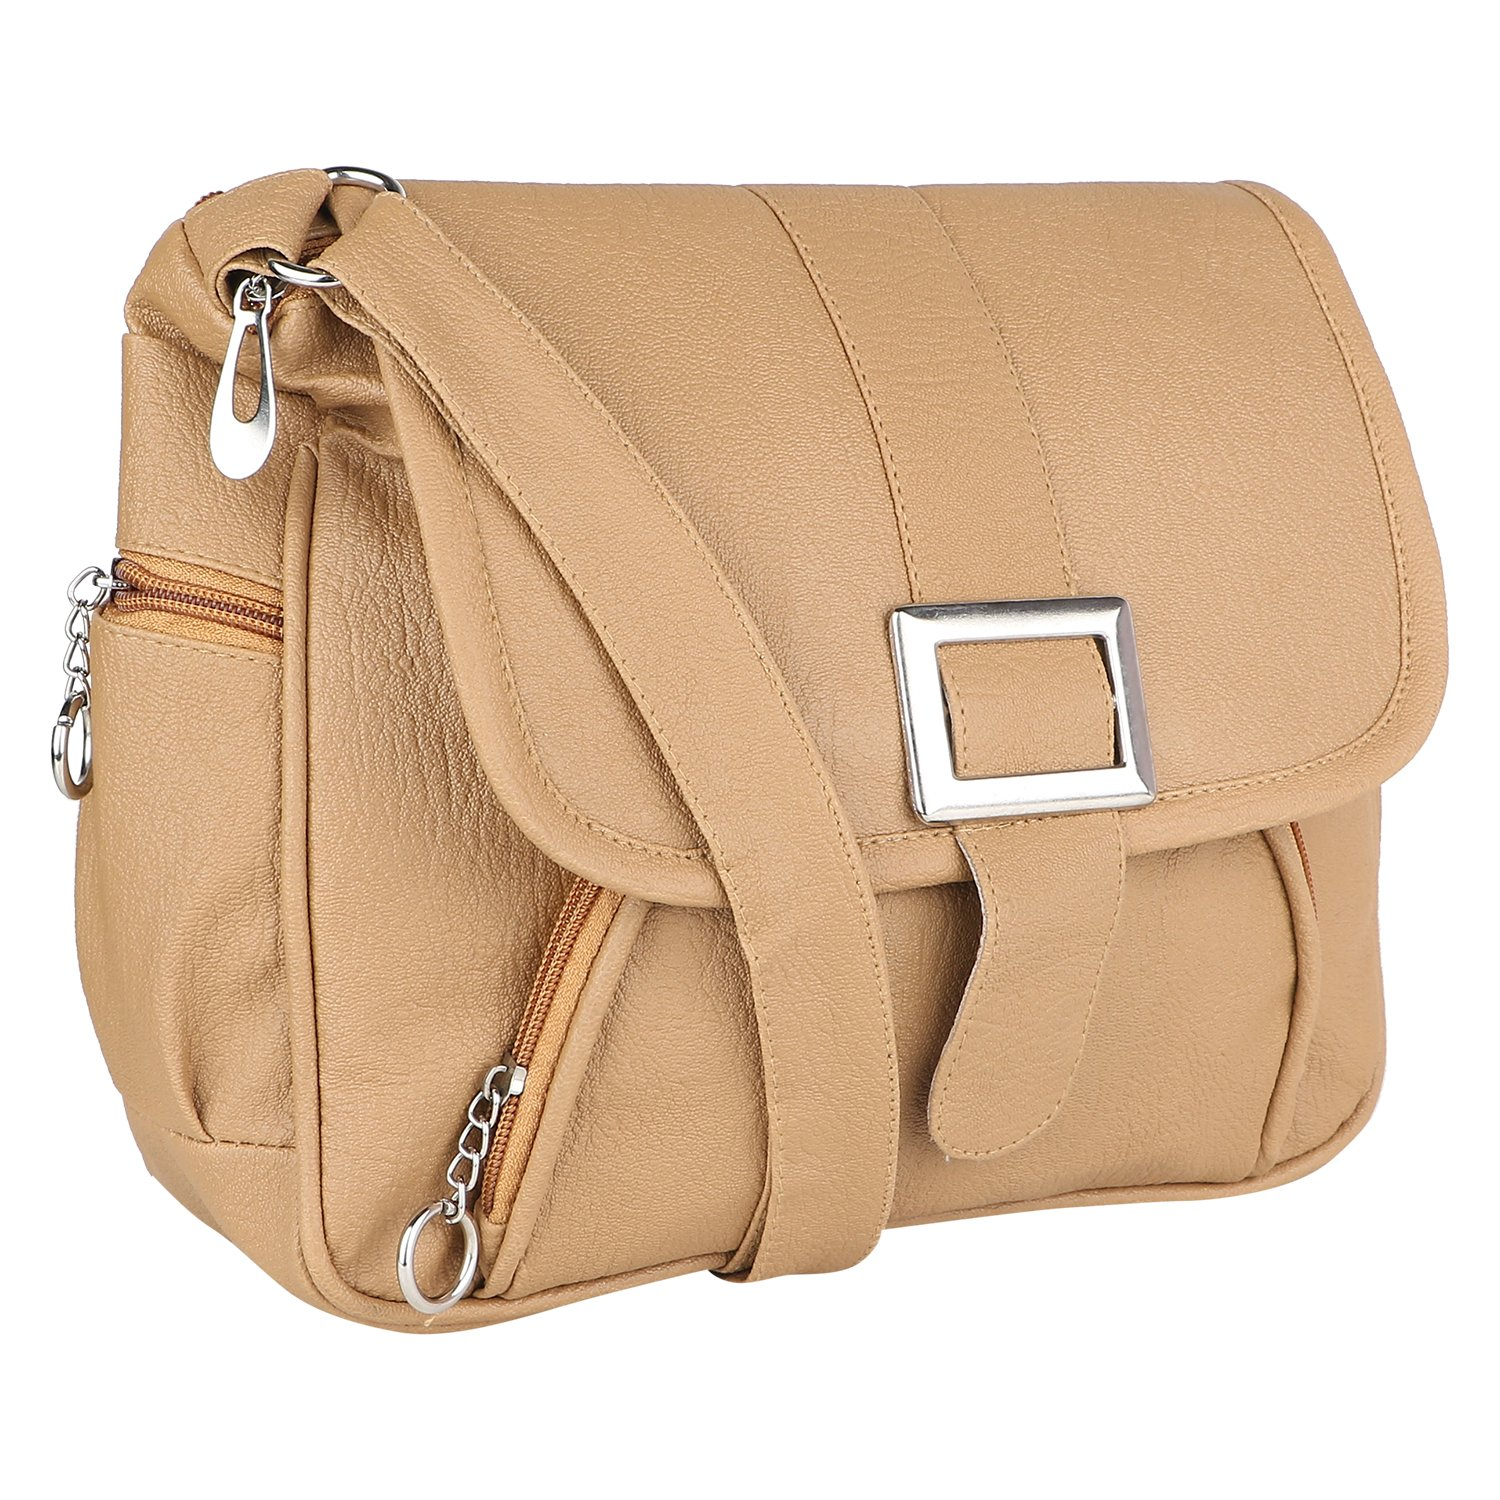 Sling Bags Online Below 500 for women - SAHAL FASHION Personal Use Sling Bag for Women